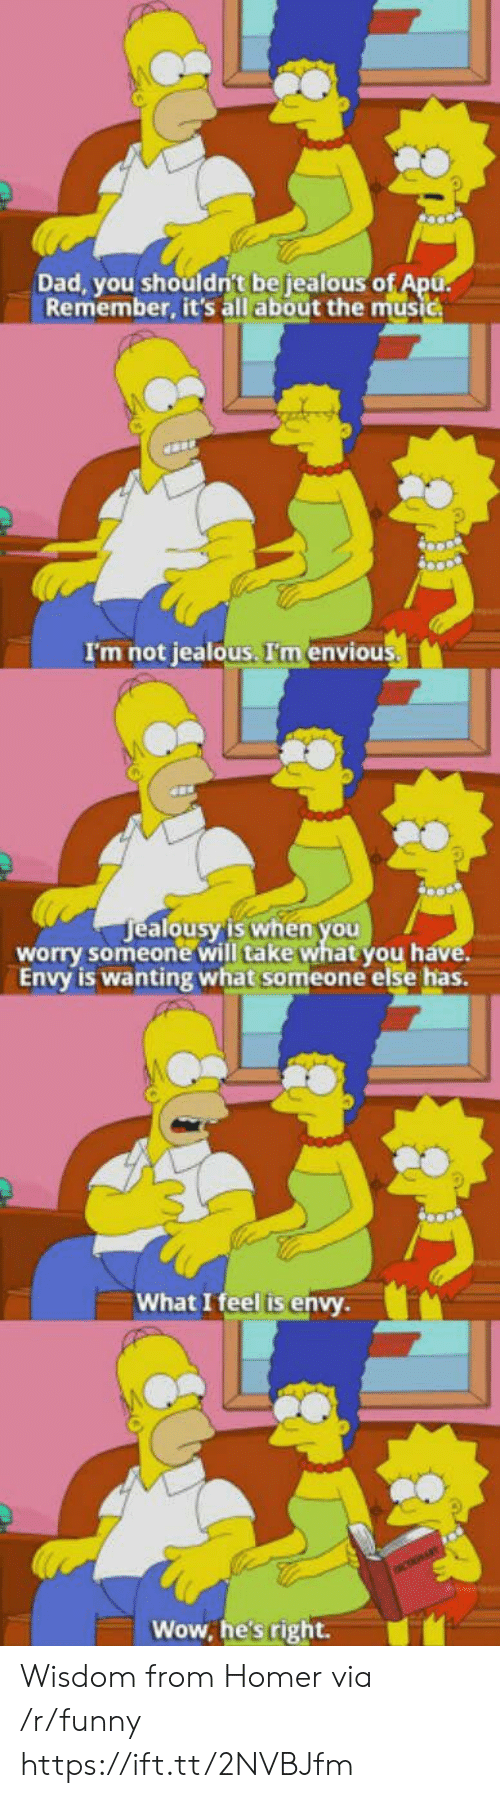 envious: Dad, you shouldn't be jealous o  Remember, it's all about the music  I'm not jealous. I'm envious  ealousy'is when you  alo  worry someone will take what you h  Envy is wanting what someone else has.  What I feel is envy  Wow, he's right. Wisdom from Homer via /r/funny https://ift.tt/2NVBJfm